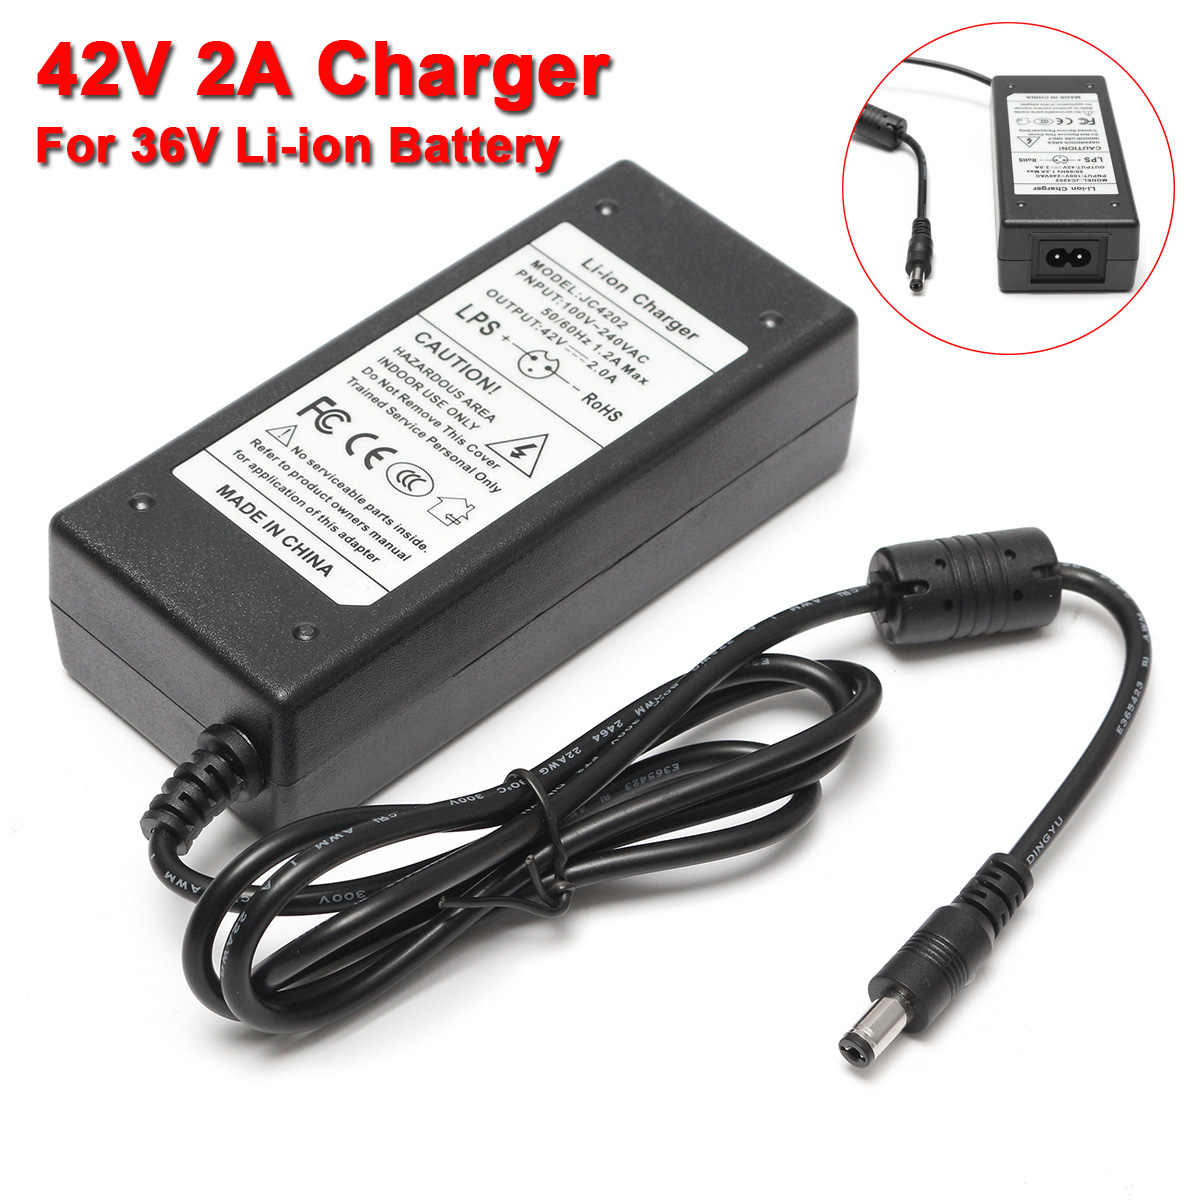 42V 2A Power Adapter Battery Charger For 36V Li-ion Lithium Battery Two-wheel Vehicle Chargers